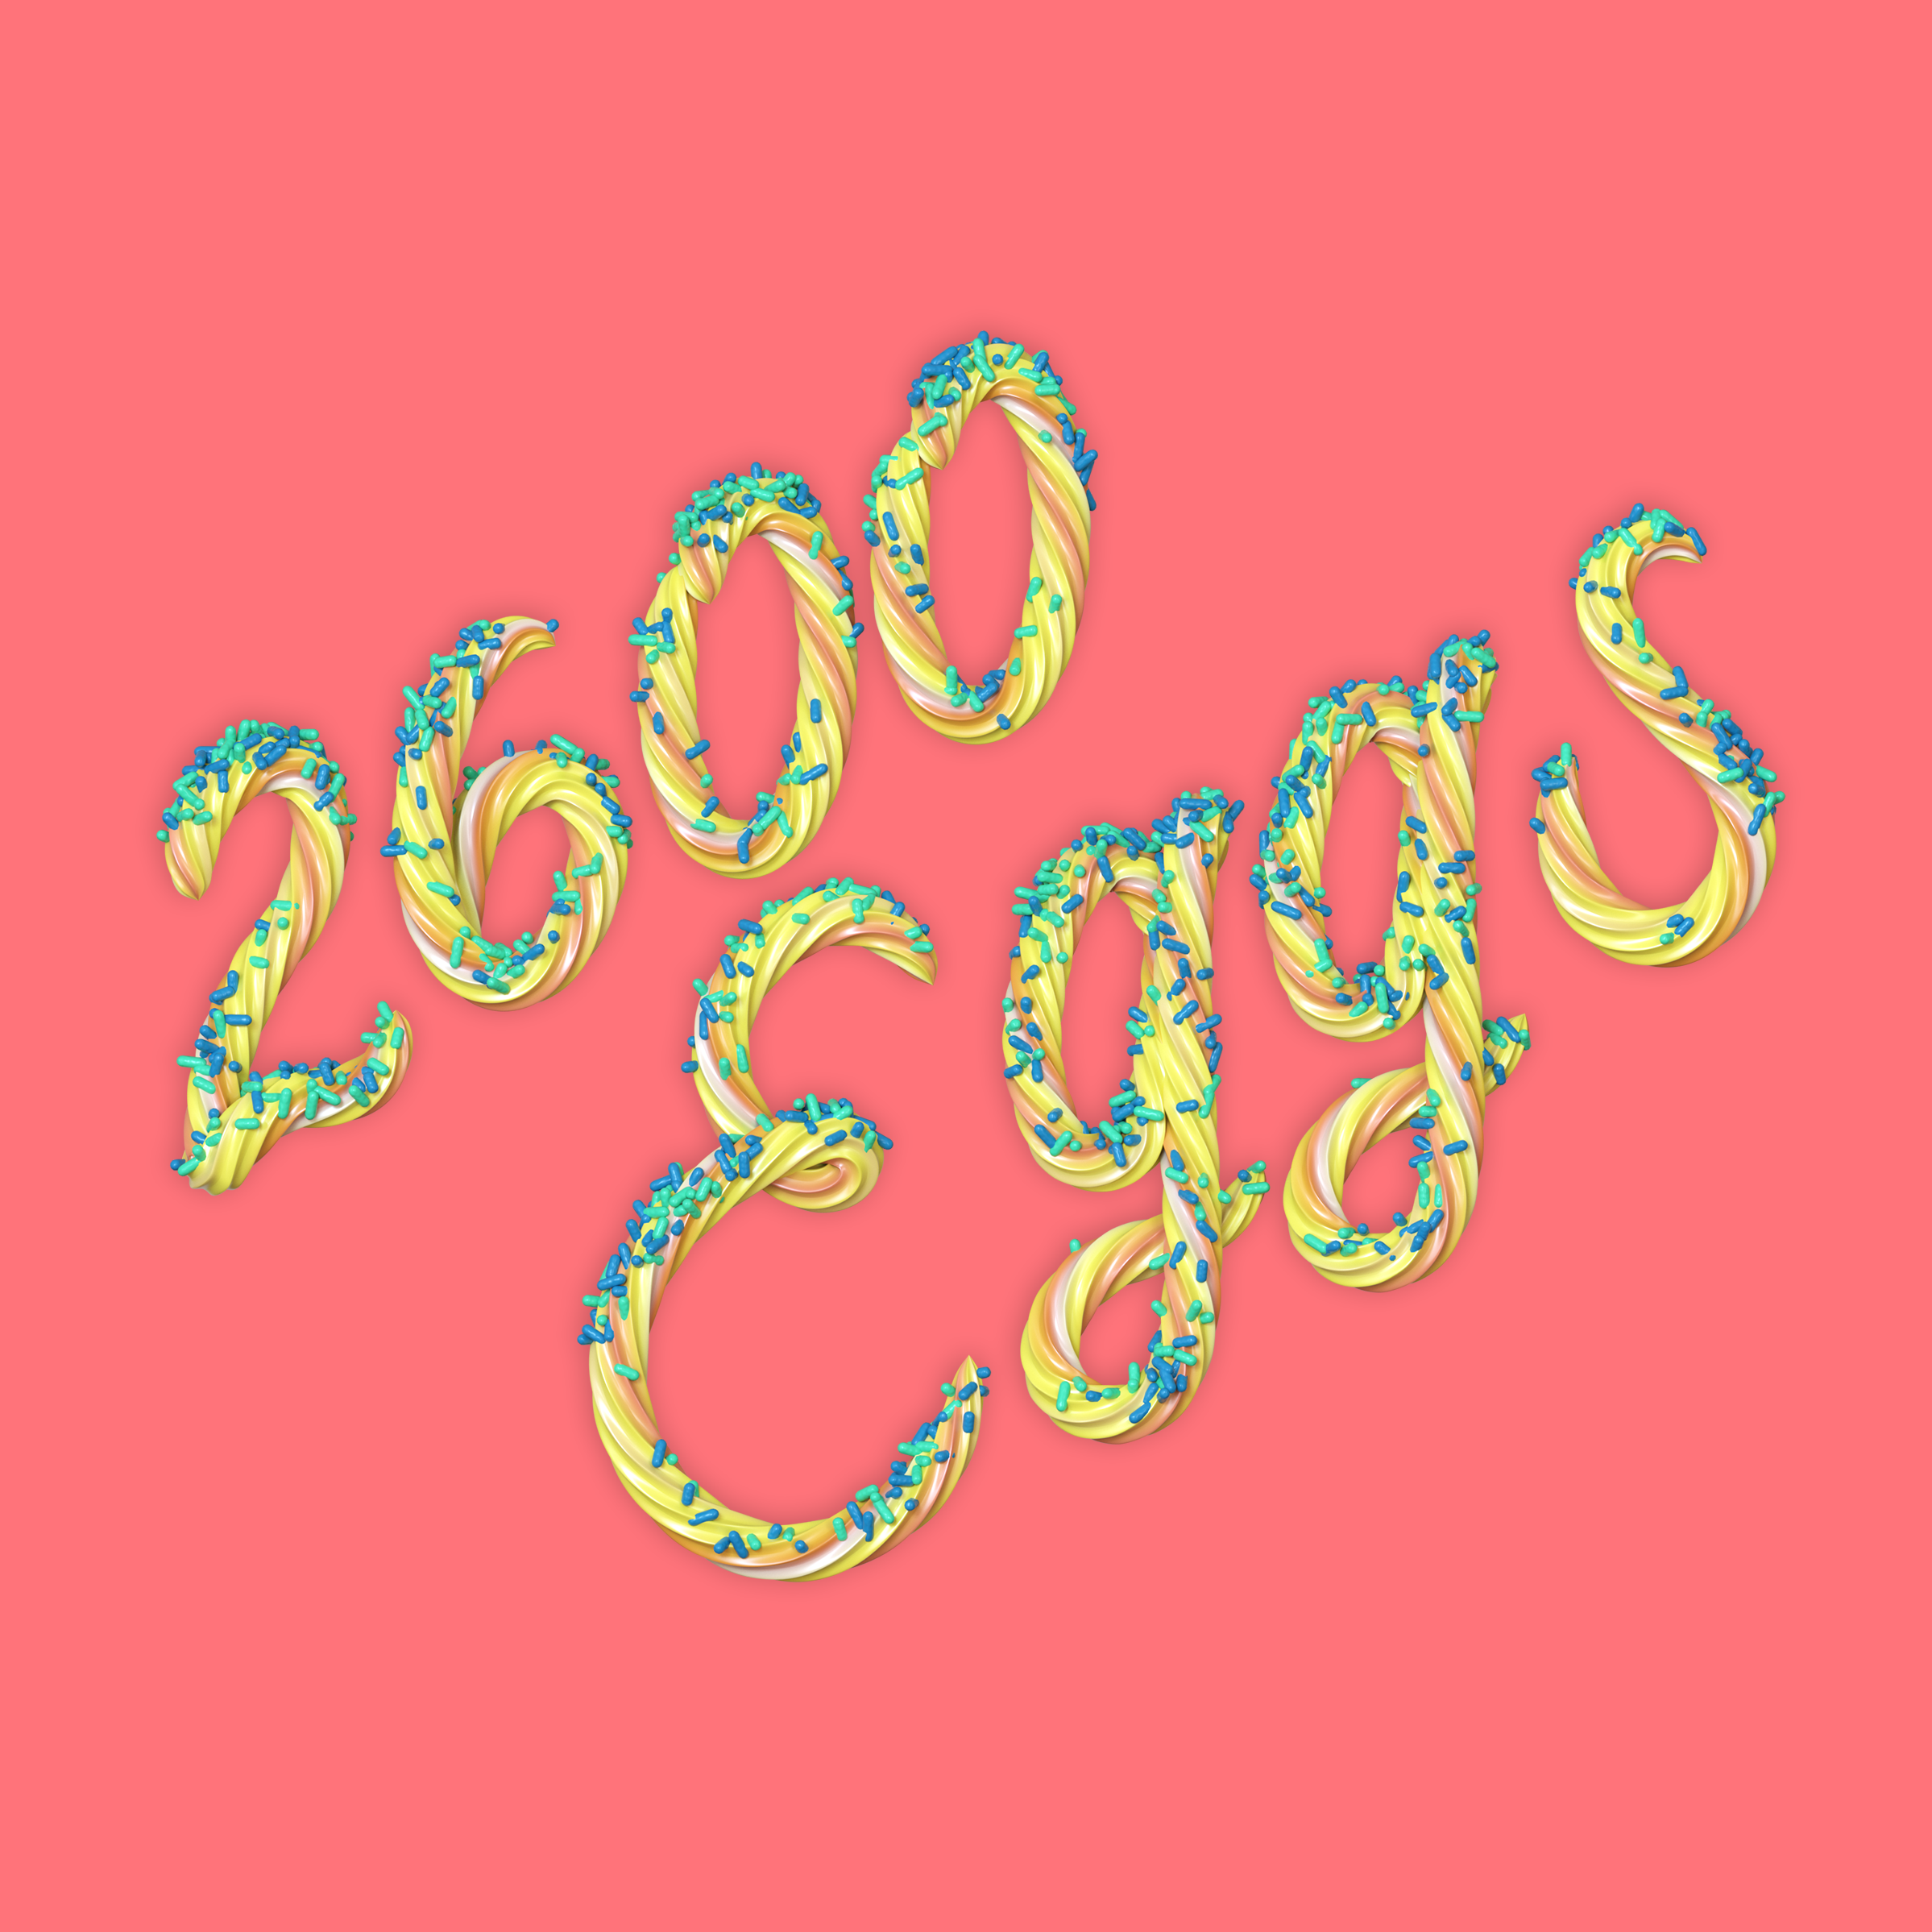 2600 Eggs 3D type lettering made of icing by Noah Camp